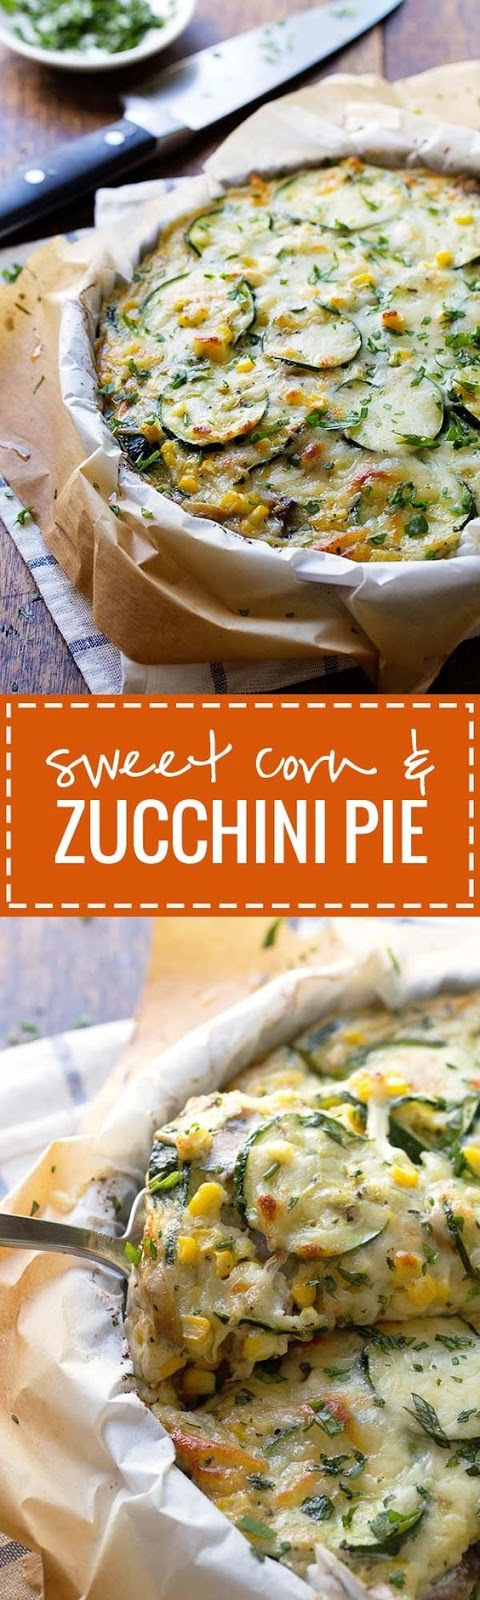 sweet corn and zucchini pie